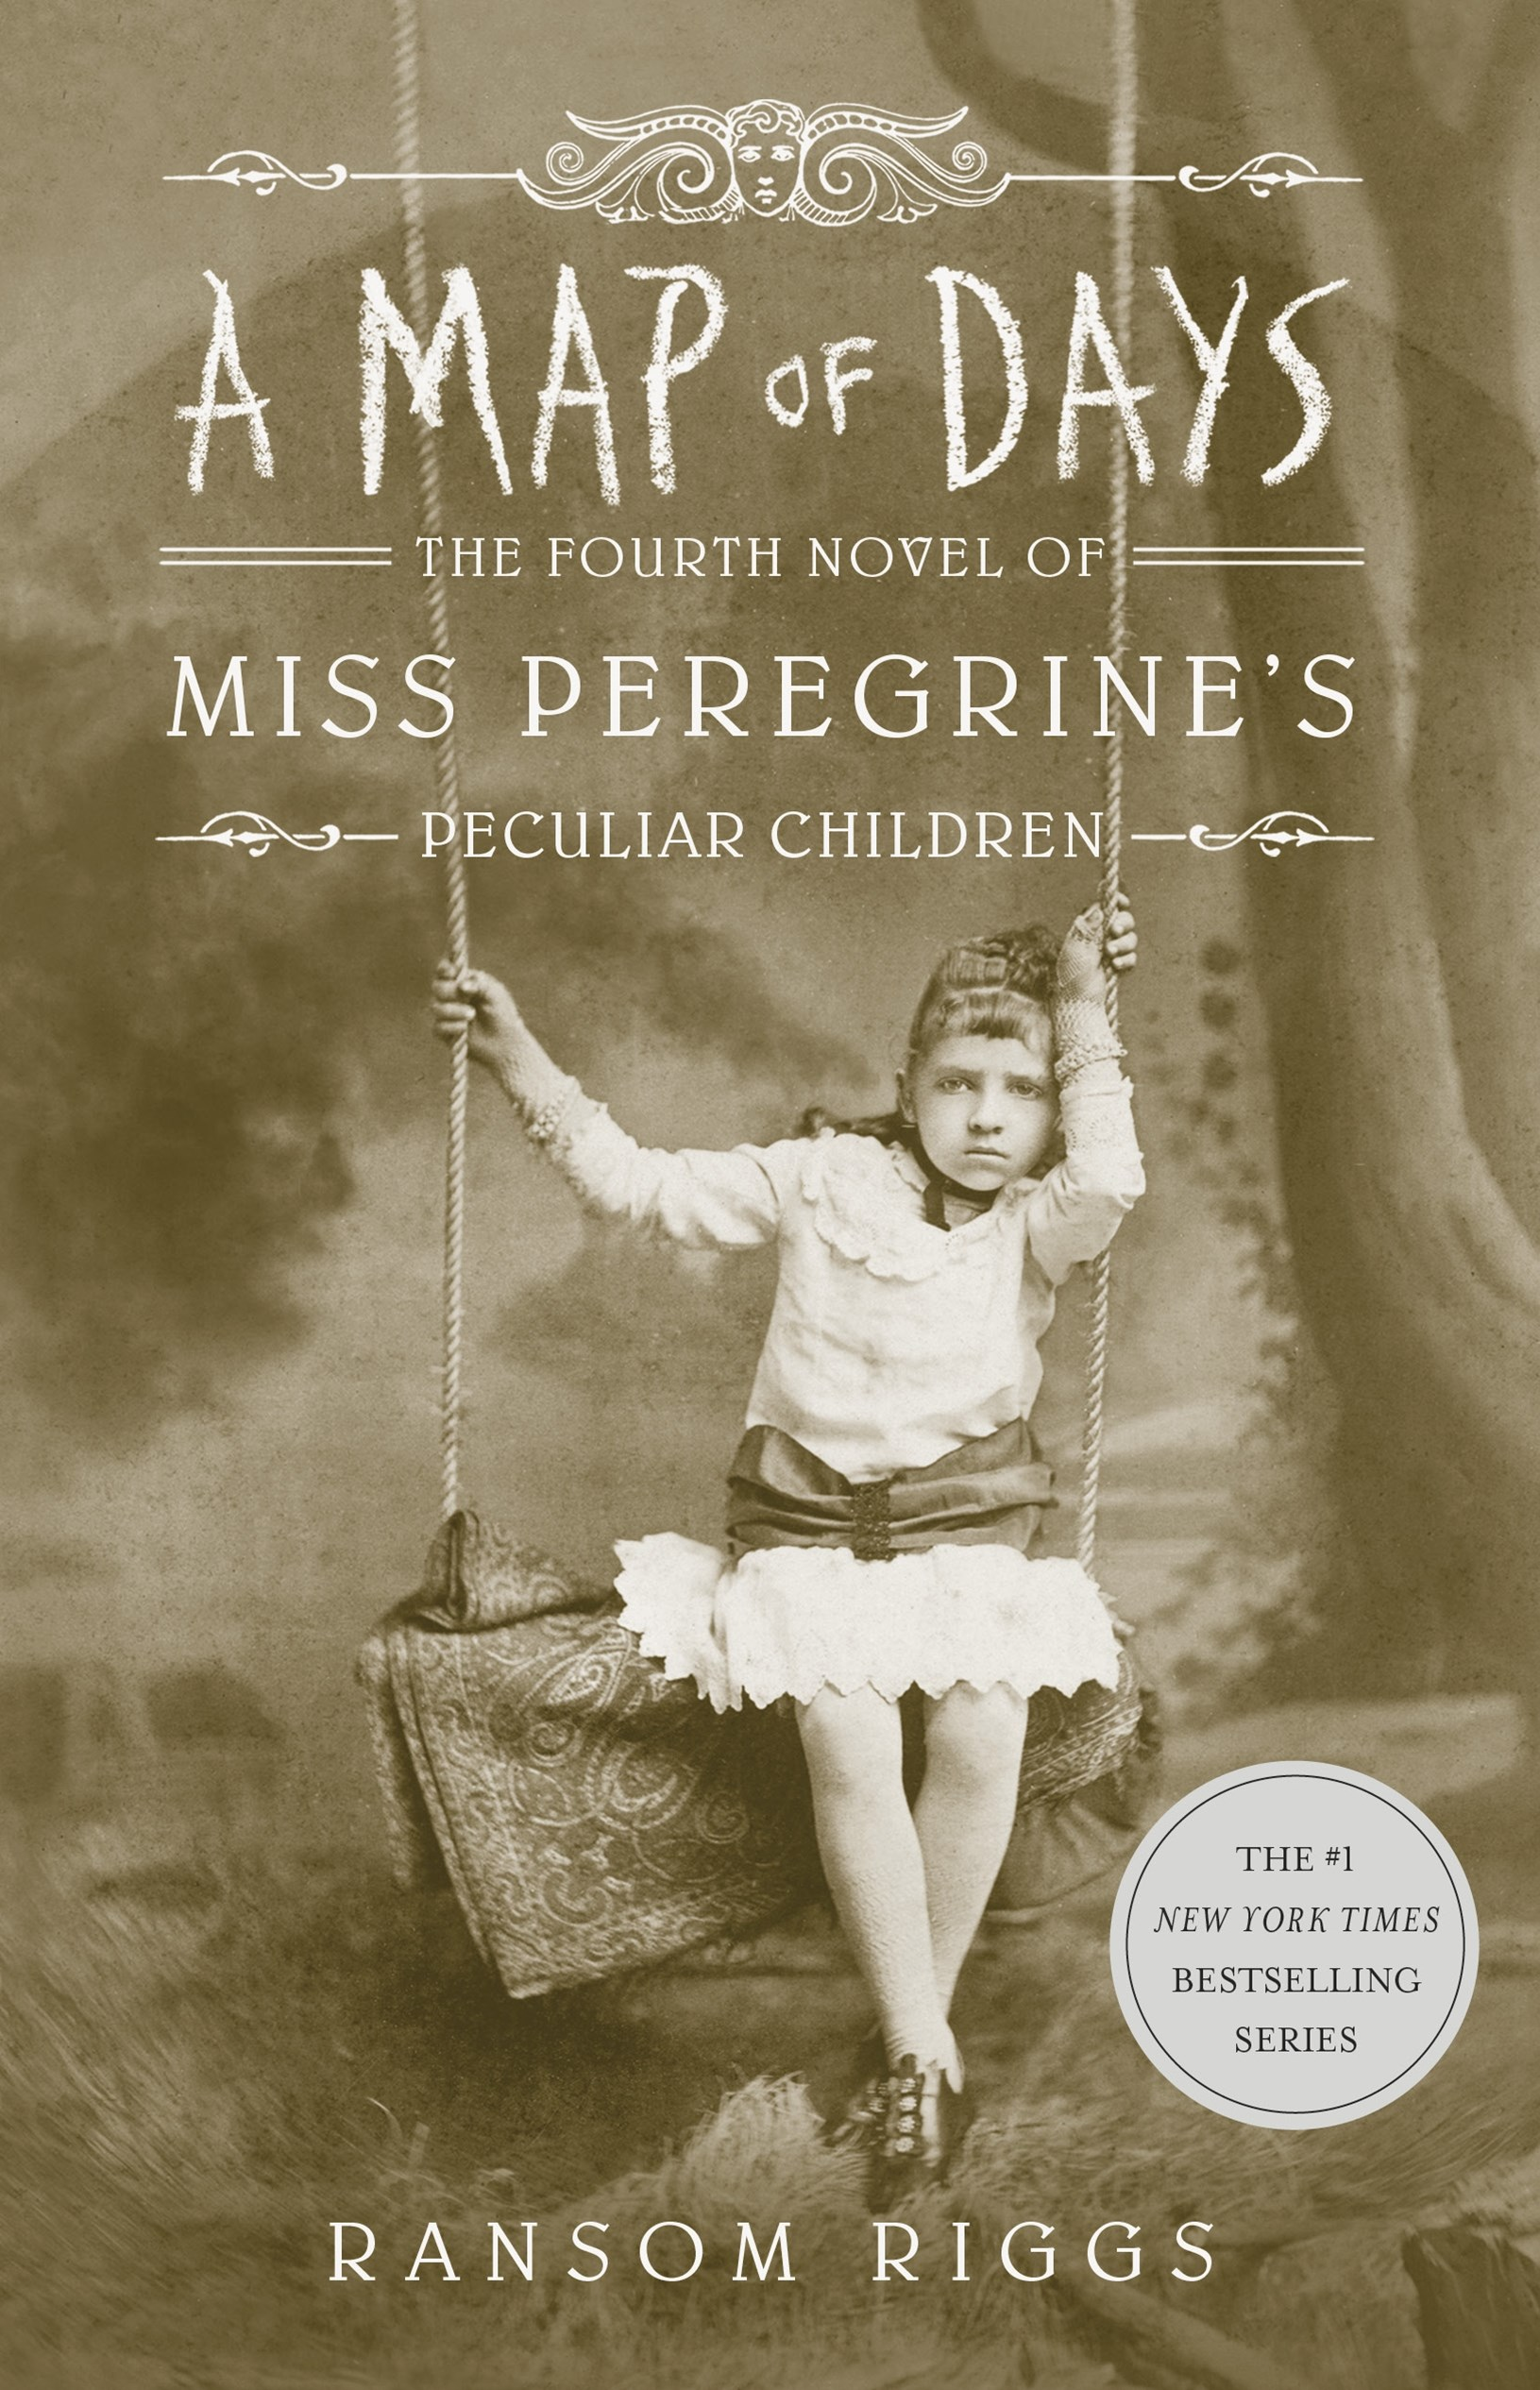 A Map of Days (Book 4, Miss Peregrine's Peculiar Children)